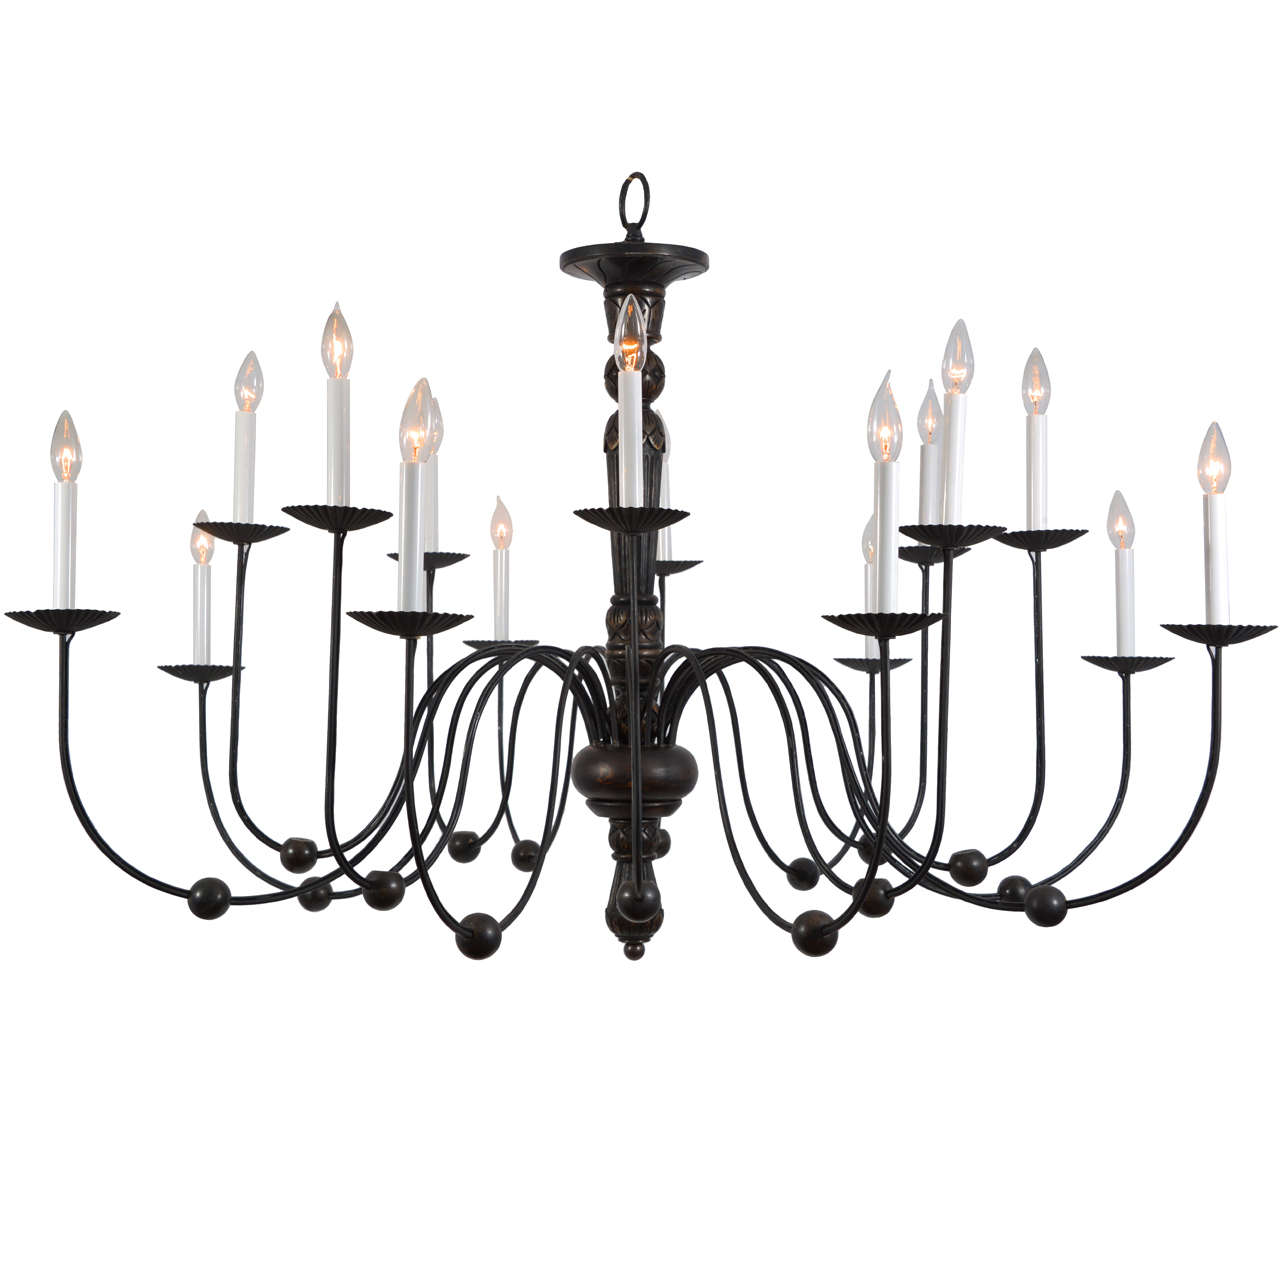 Candle Light Fixture: Italian, 16 Light Candle Fixture, Electrified. At 1stdibs